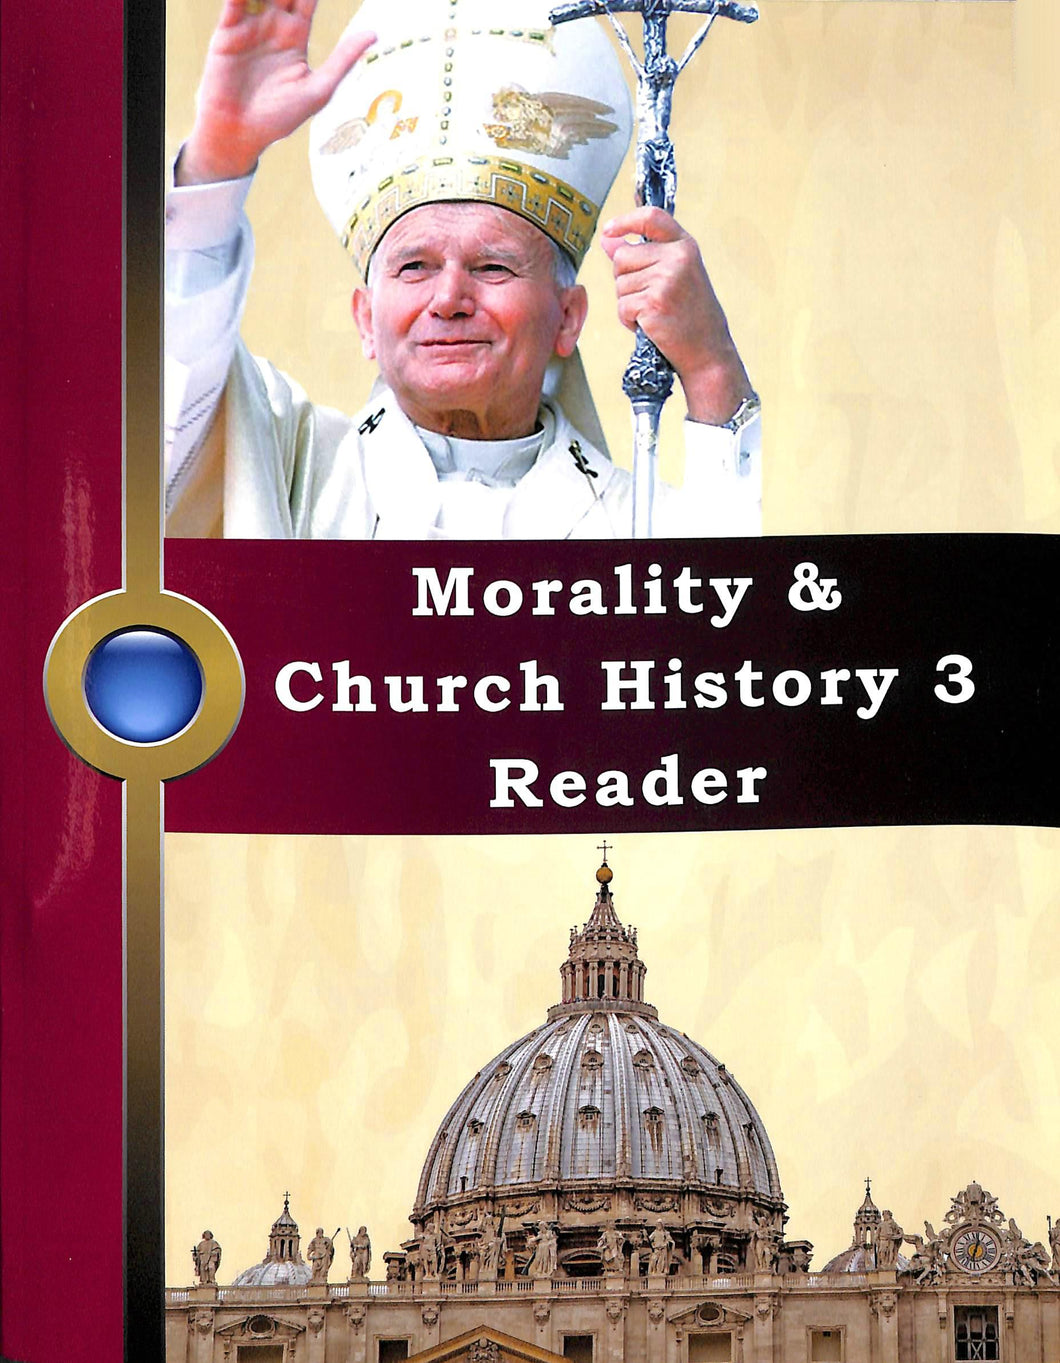 Church History III & Morality Reader